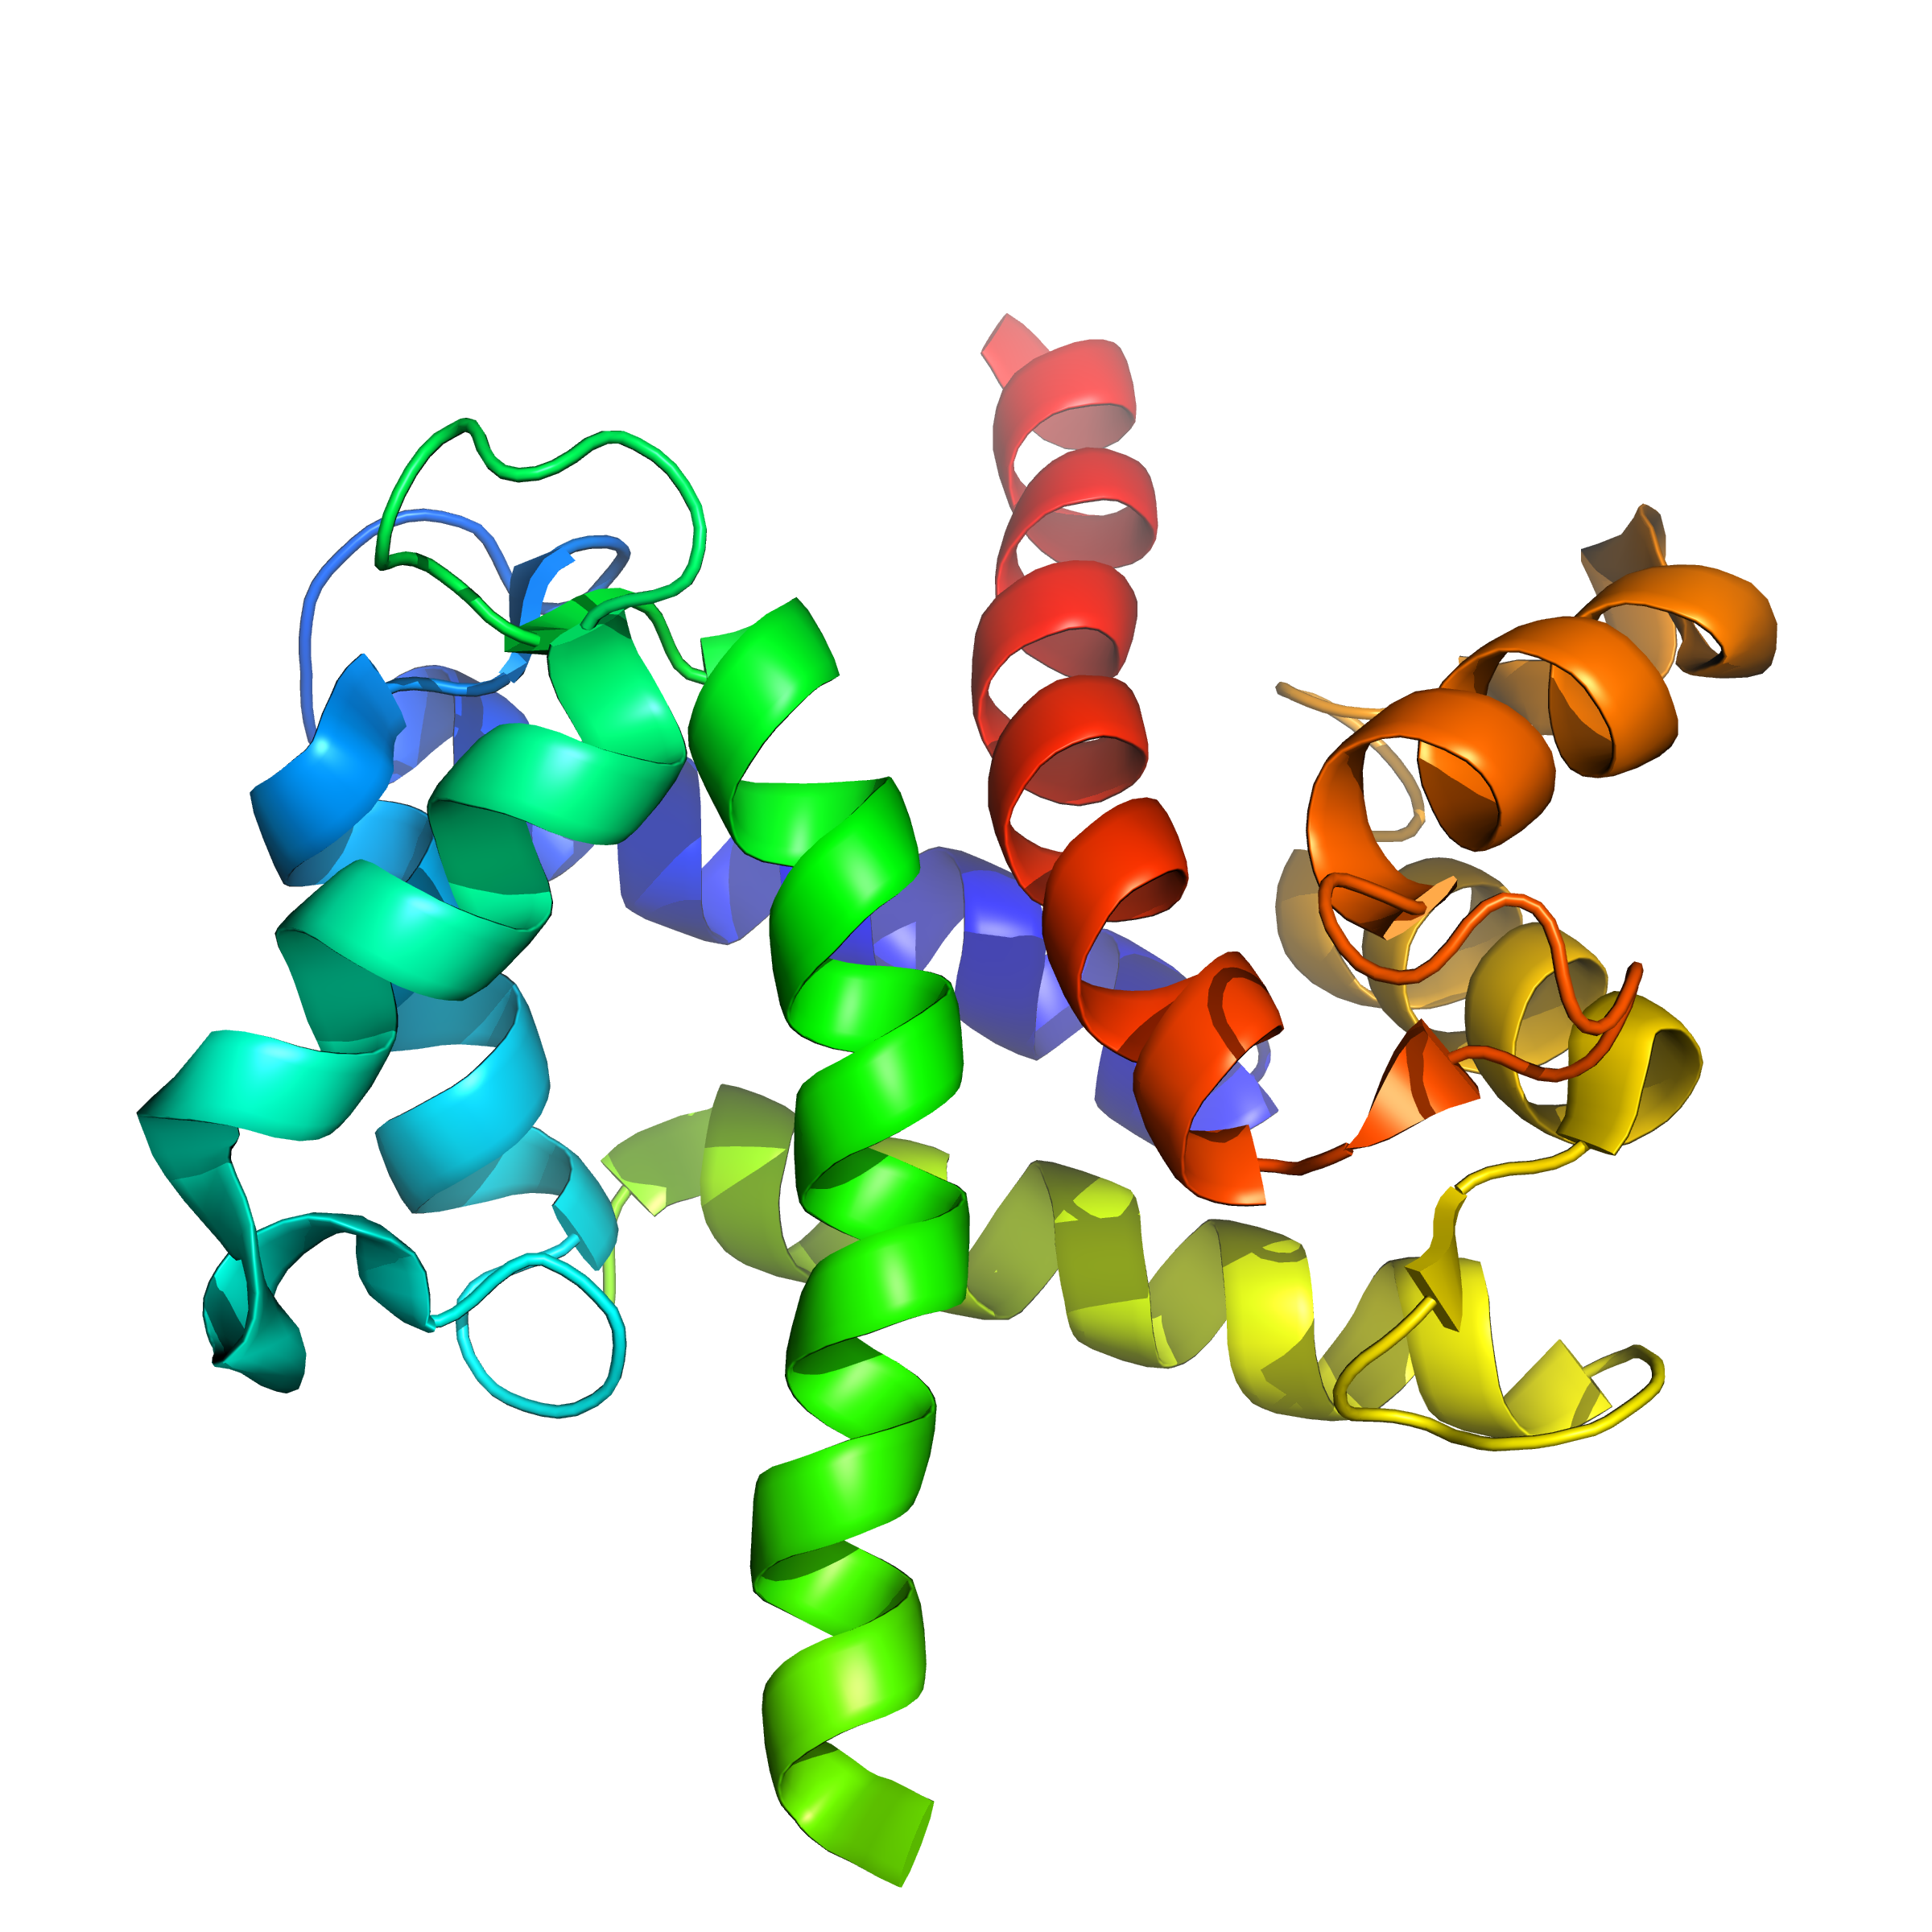 s100a1 | recombinant proteins offer